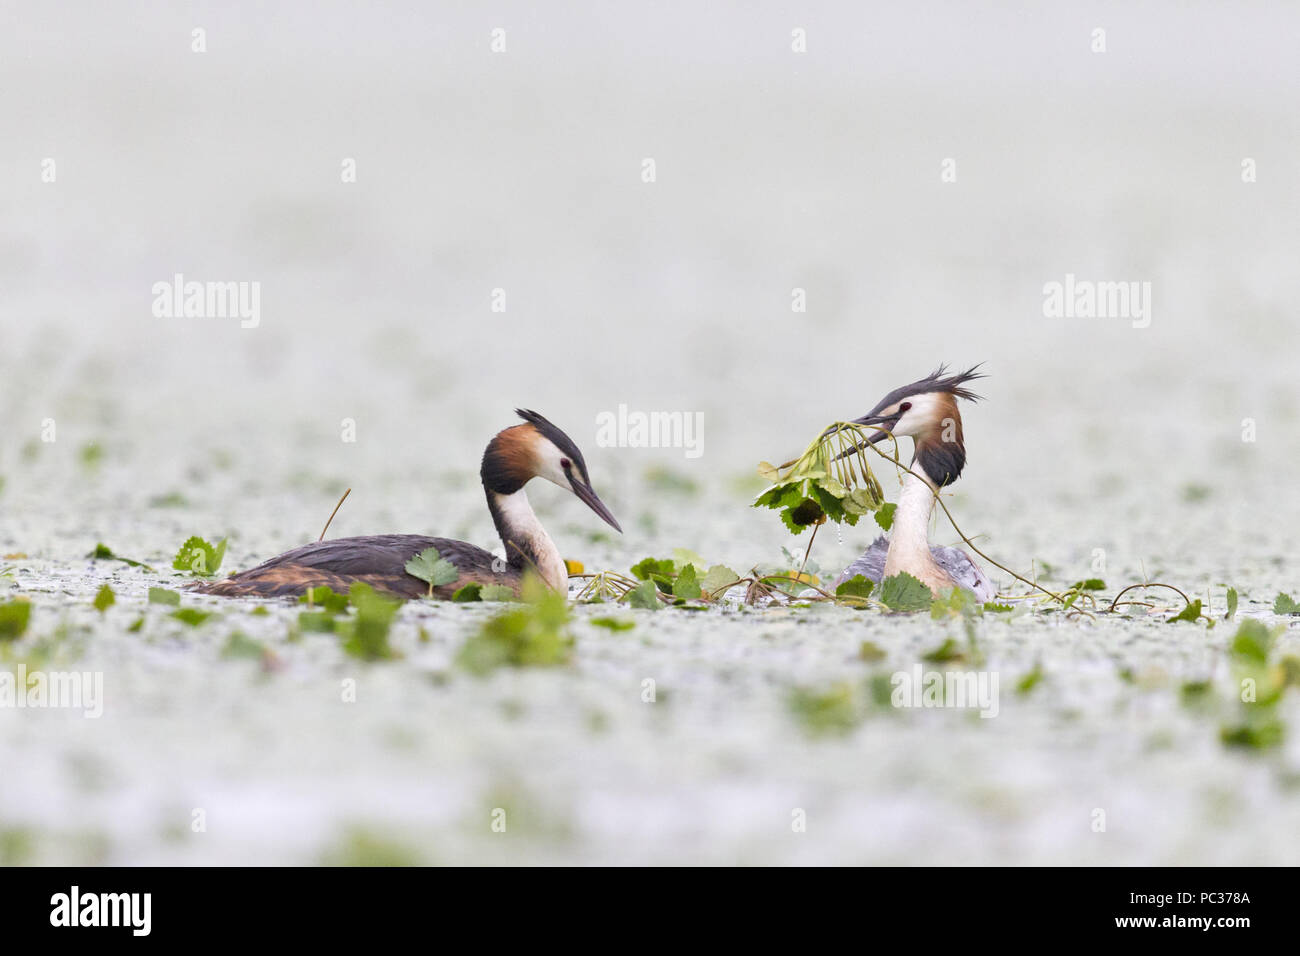 Great Crested Grebe (Podiceps cristatus) adult pair, swimming, nest building, Danube Delta, Romania, June - Stock Image